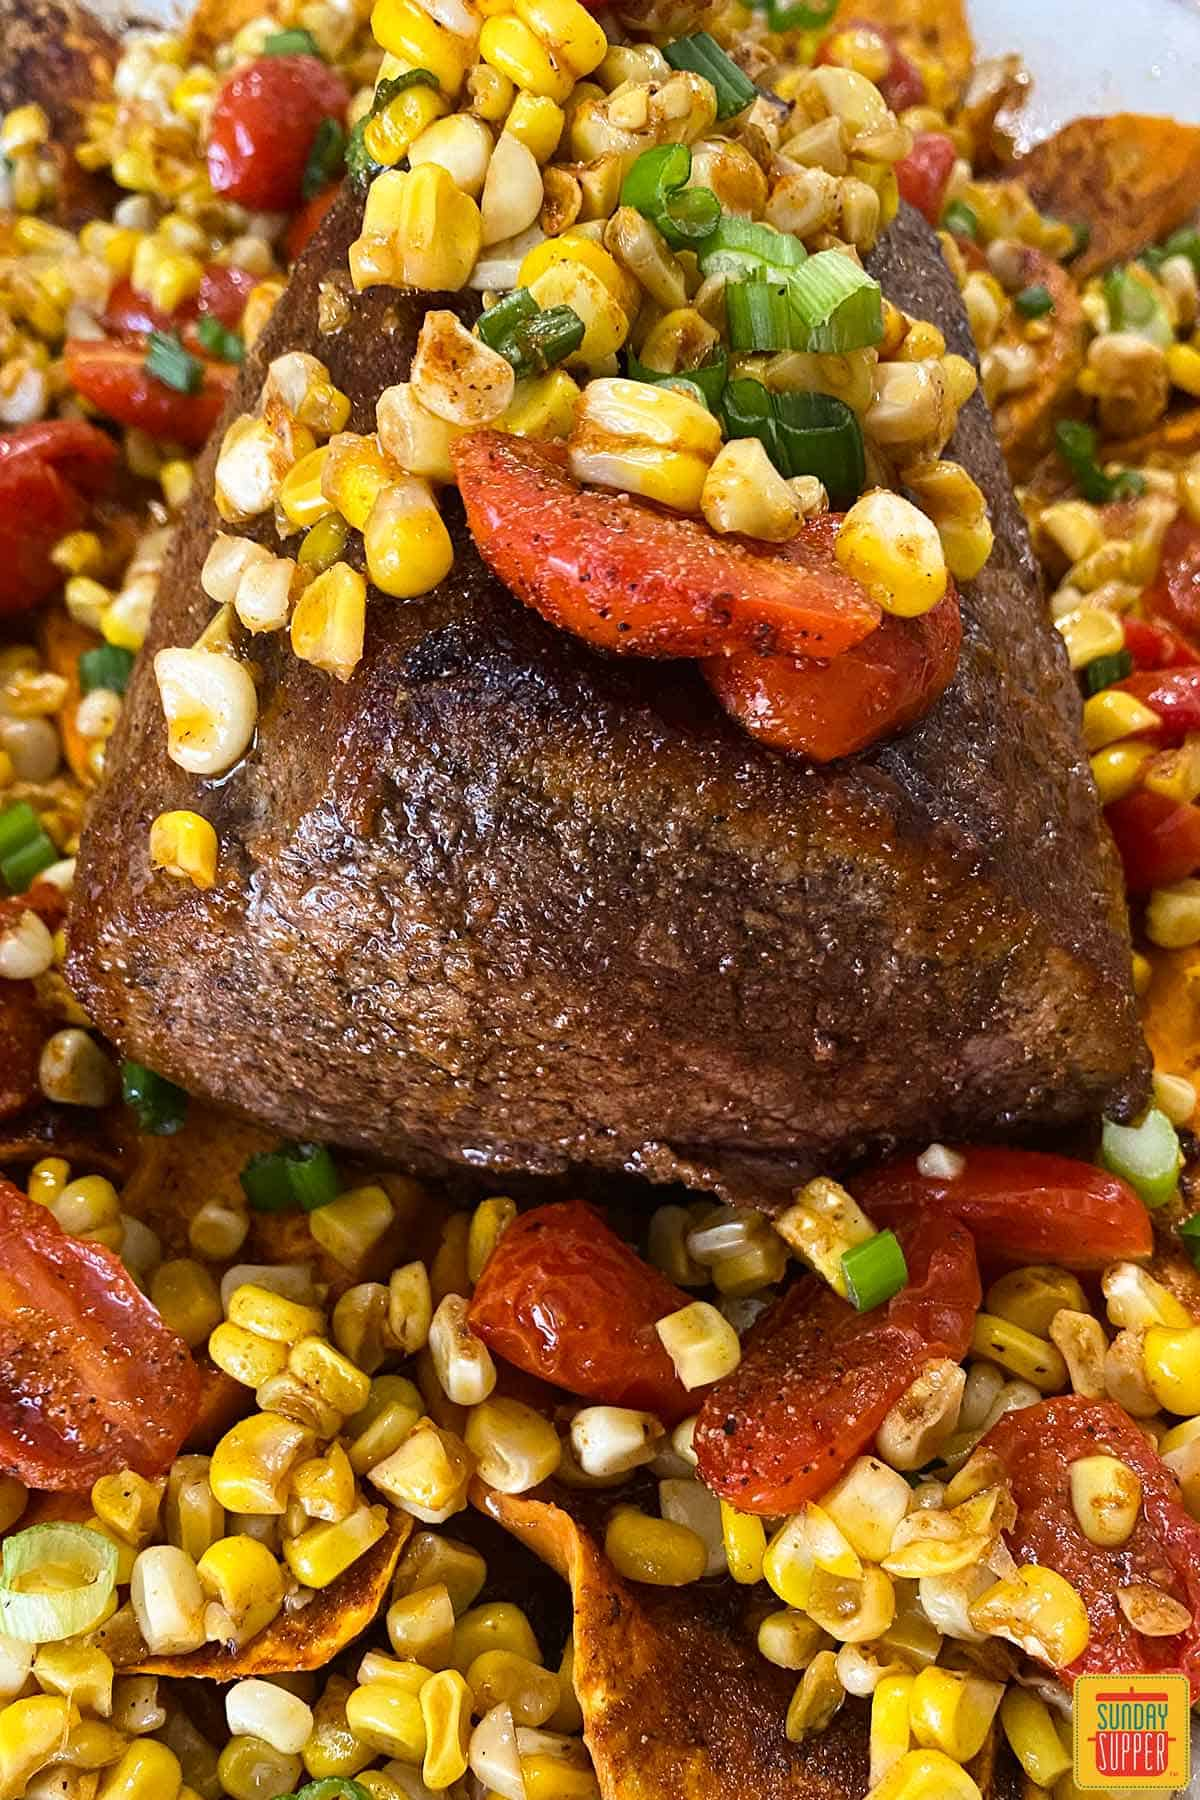 Close up on eye of round roast surrounded by corn, tomatoes, and sweet potatoes